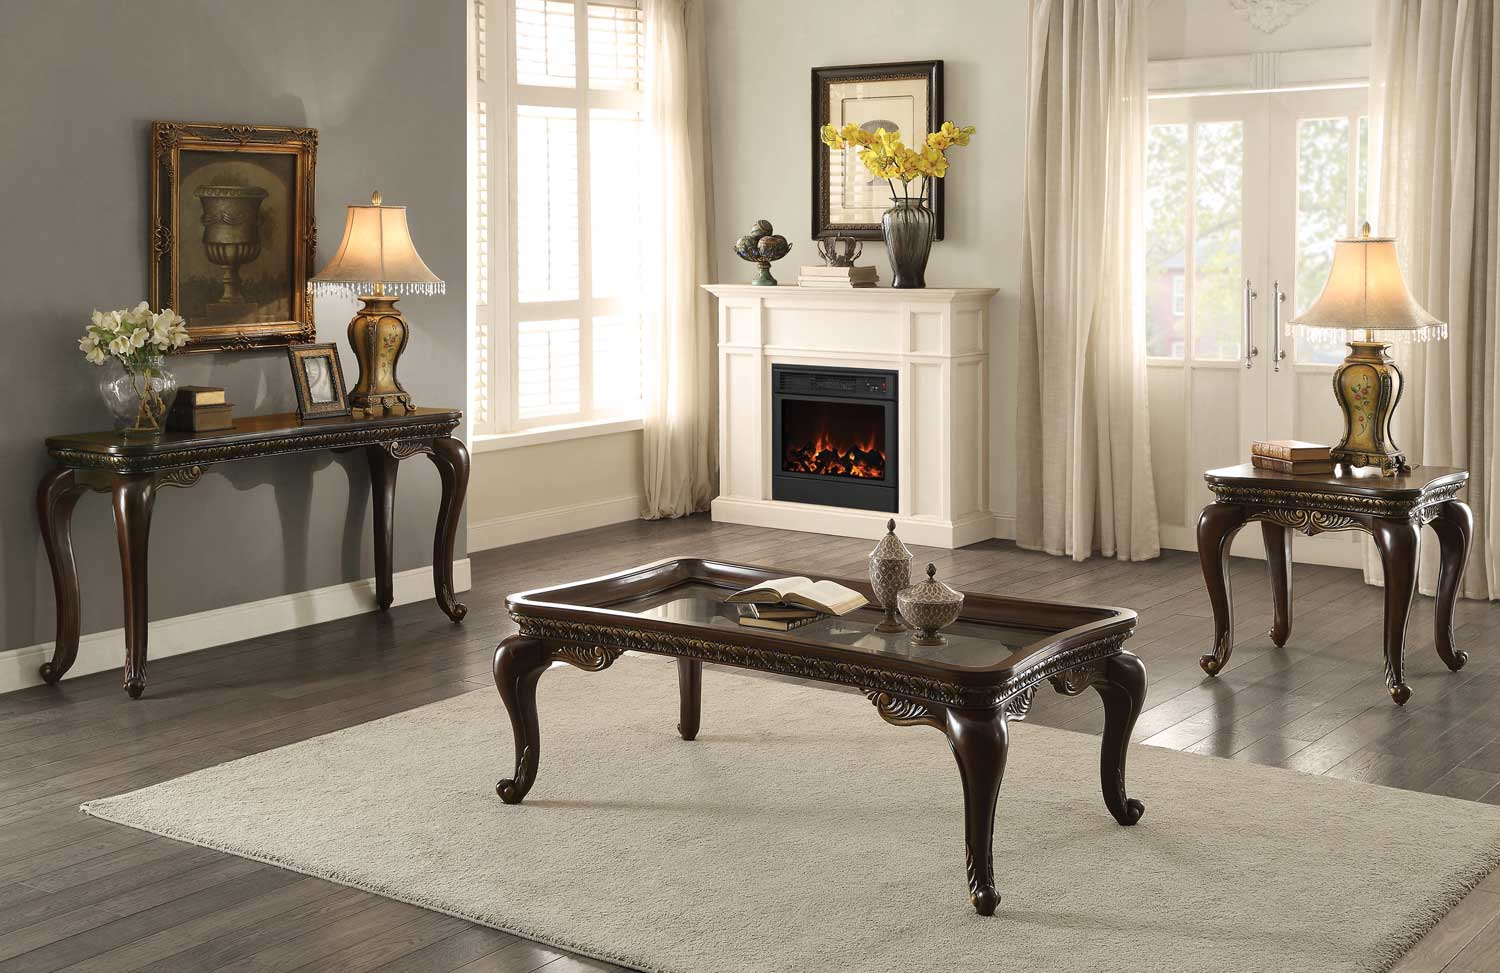 Homelegance Bonaventure Cocktail/Coffee Table Set - Cherry